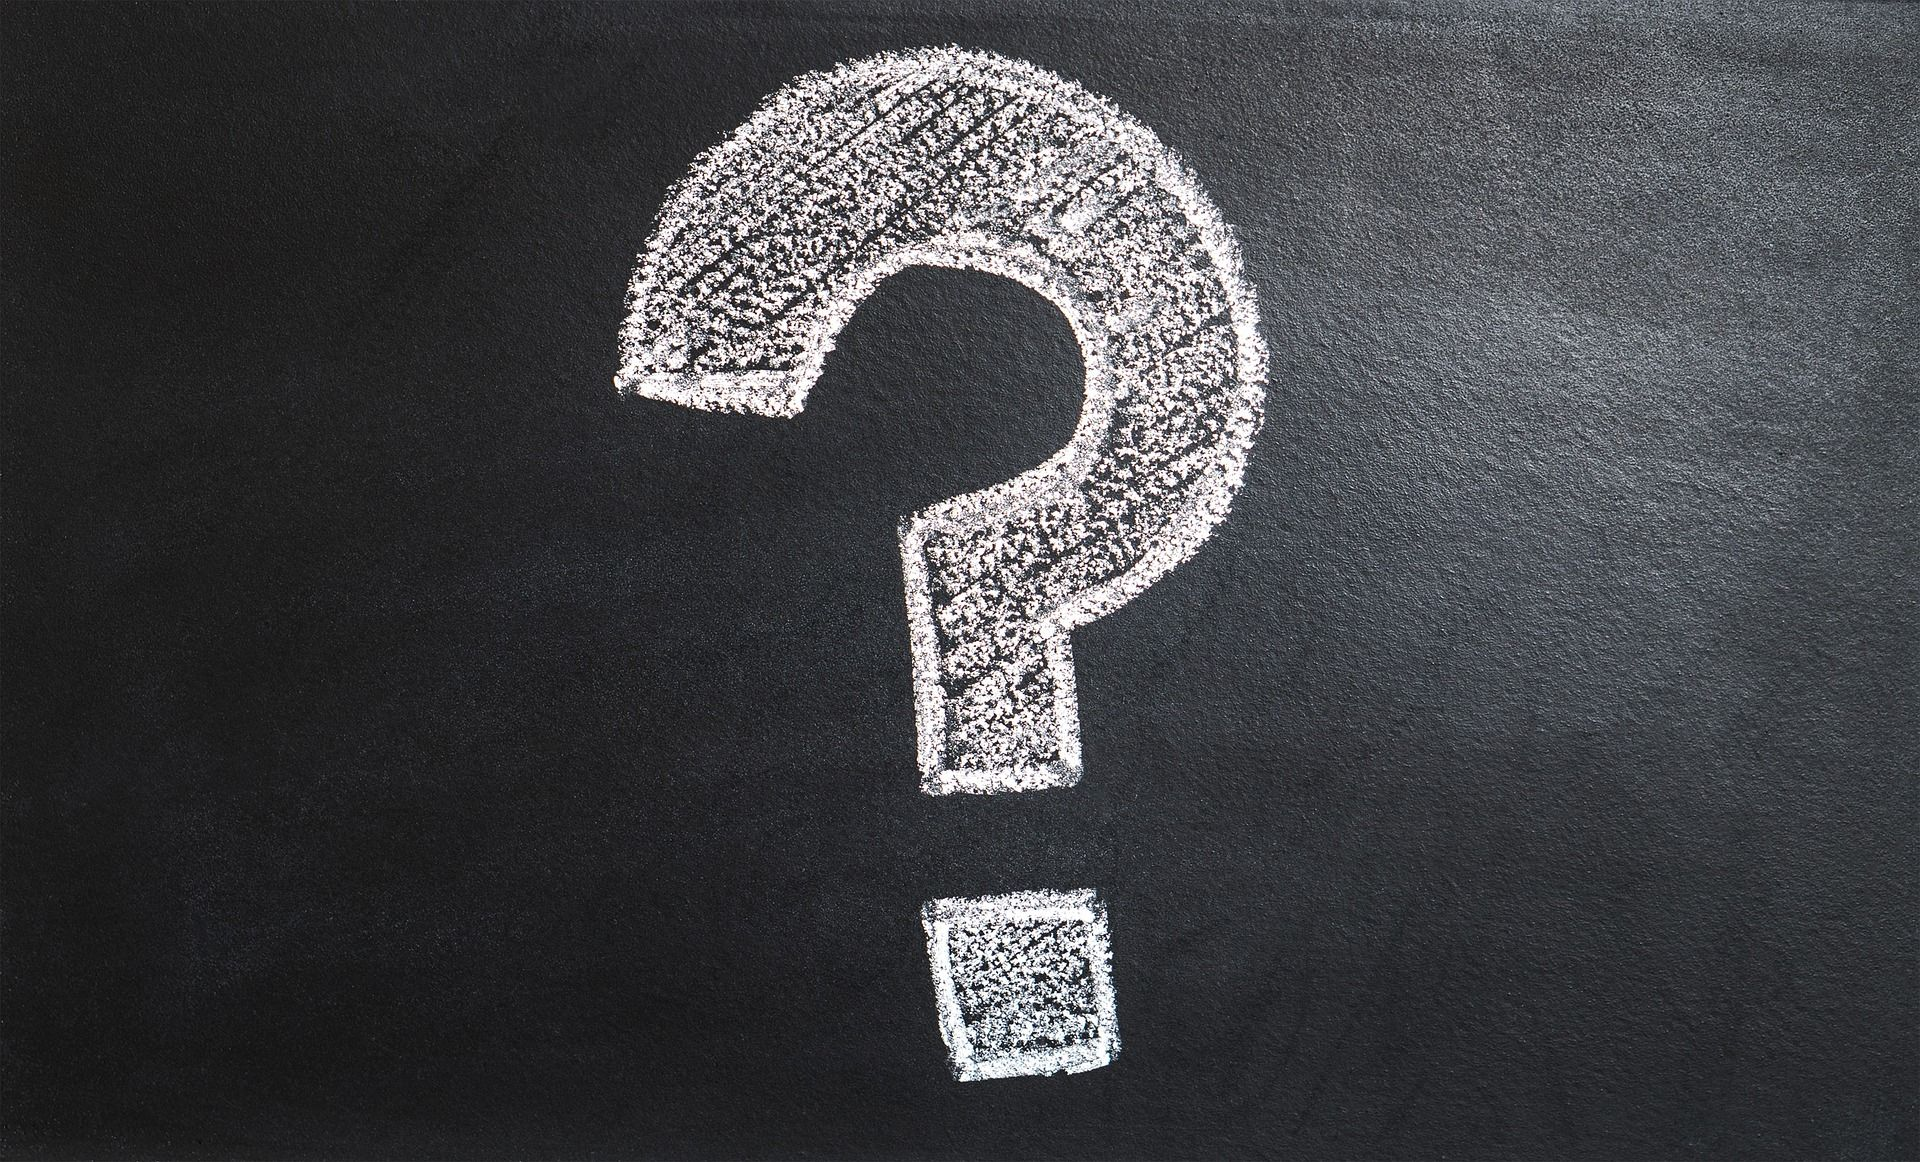 Large question mark drawn in white chalk on a black chalkboard